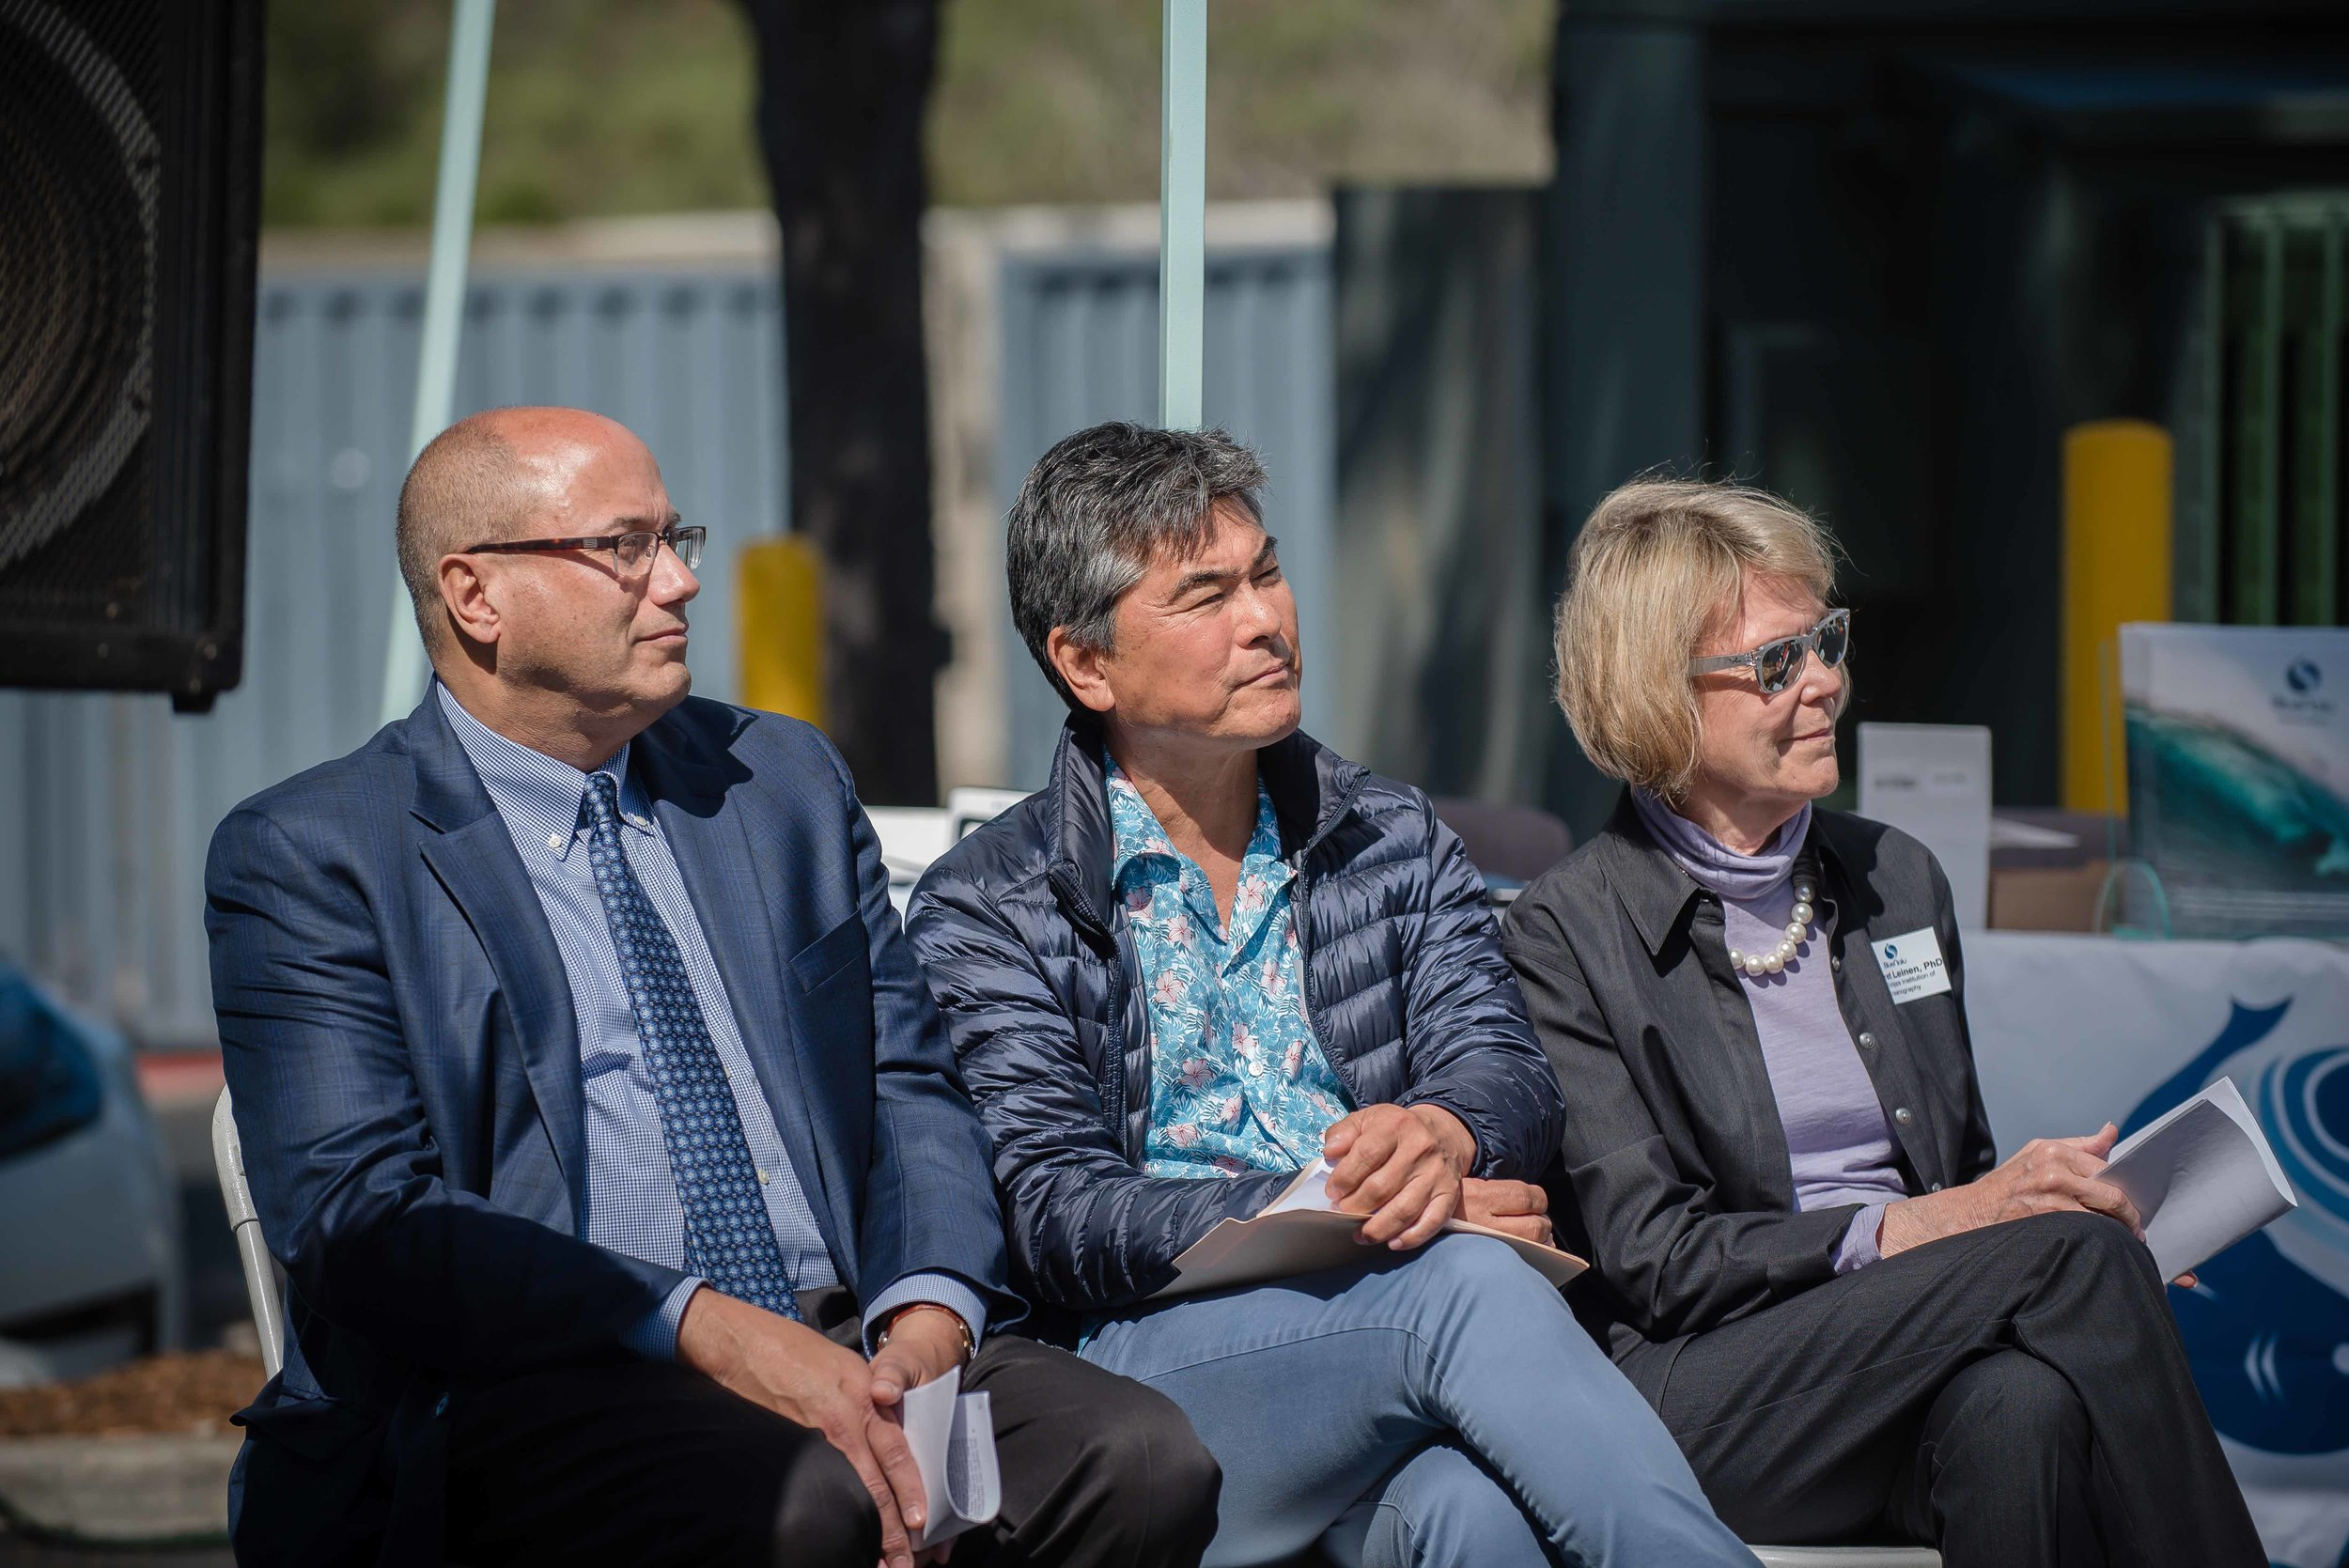 BlueNalu CEO Lou Cooperhouse, Celebrity Chef Roy Yamaguchi, and Margaret Leinen, PhD, Director, UC San Diego Scripps Institution of Oceanography at the BlueNalu Ribbon Cutting Ceremony, Earth Day, April 22, 2019.